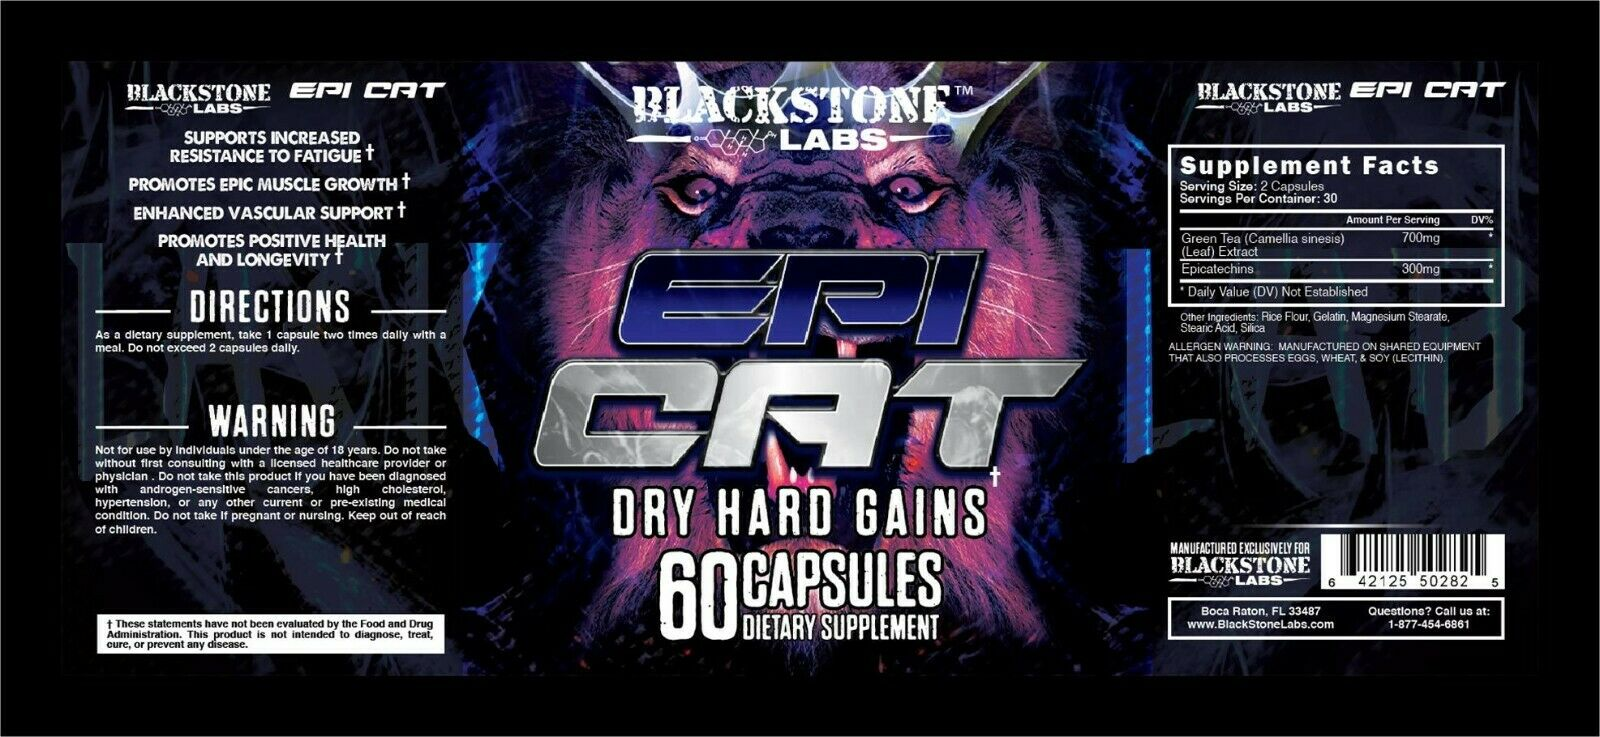 BLACKSTONE LABS EPICAT Bodybuilding, Powerlifting, Muscle Growth Epi Cat 1